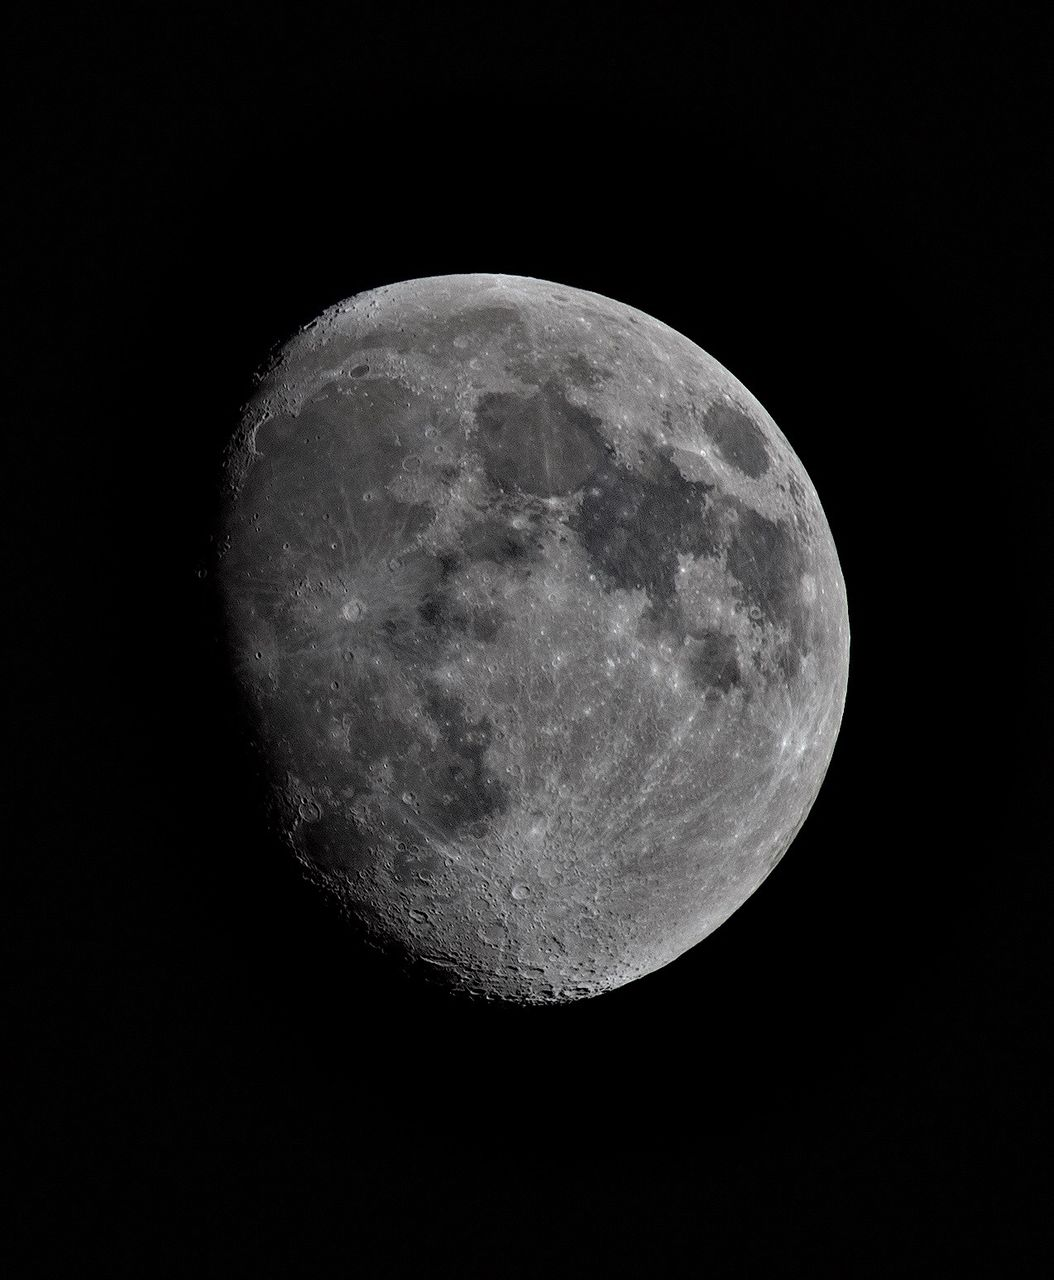 space, astronomy, moon, night, sky, planetary moon, moon surface, beauty in nature, scenics - nature, no people, nature, tranquility, tranquil scene, low angle view, space exploration, copy space, idyllic, shape, exploration, majestic, outdoors, dark, moonlight, full moon, astrology, space and astronomy